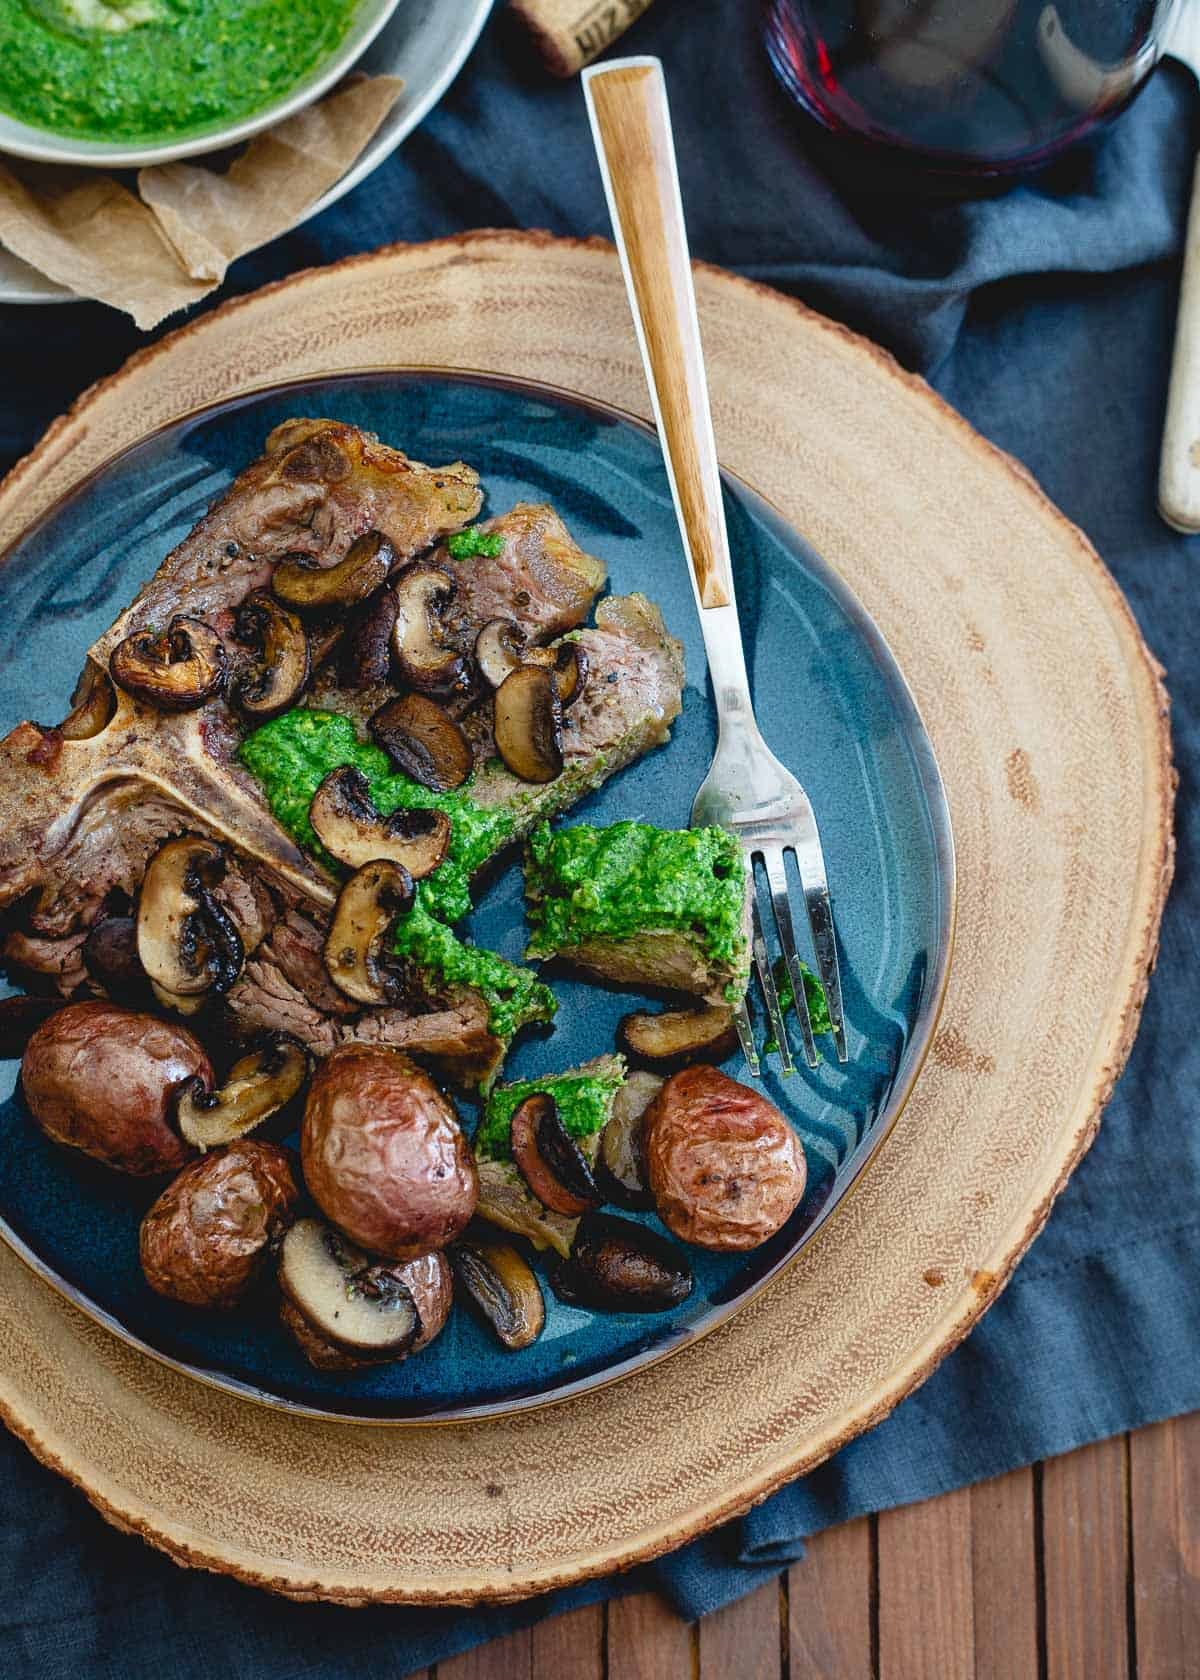 This porterhouse steak skillet has roasted baby red potatoes and mushrooms all made in the same pan for an easy, impressive dinner.